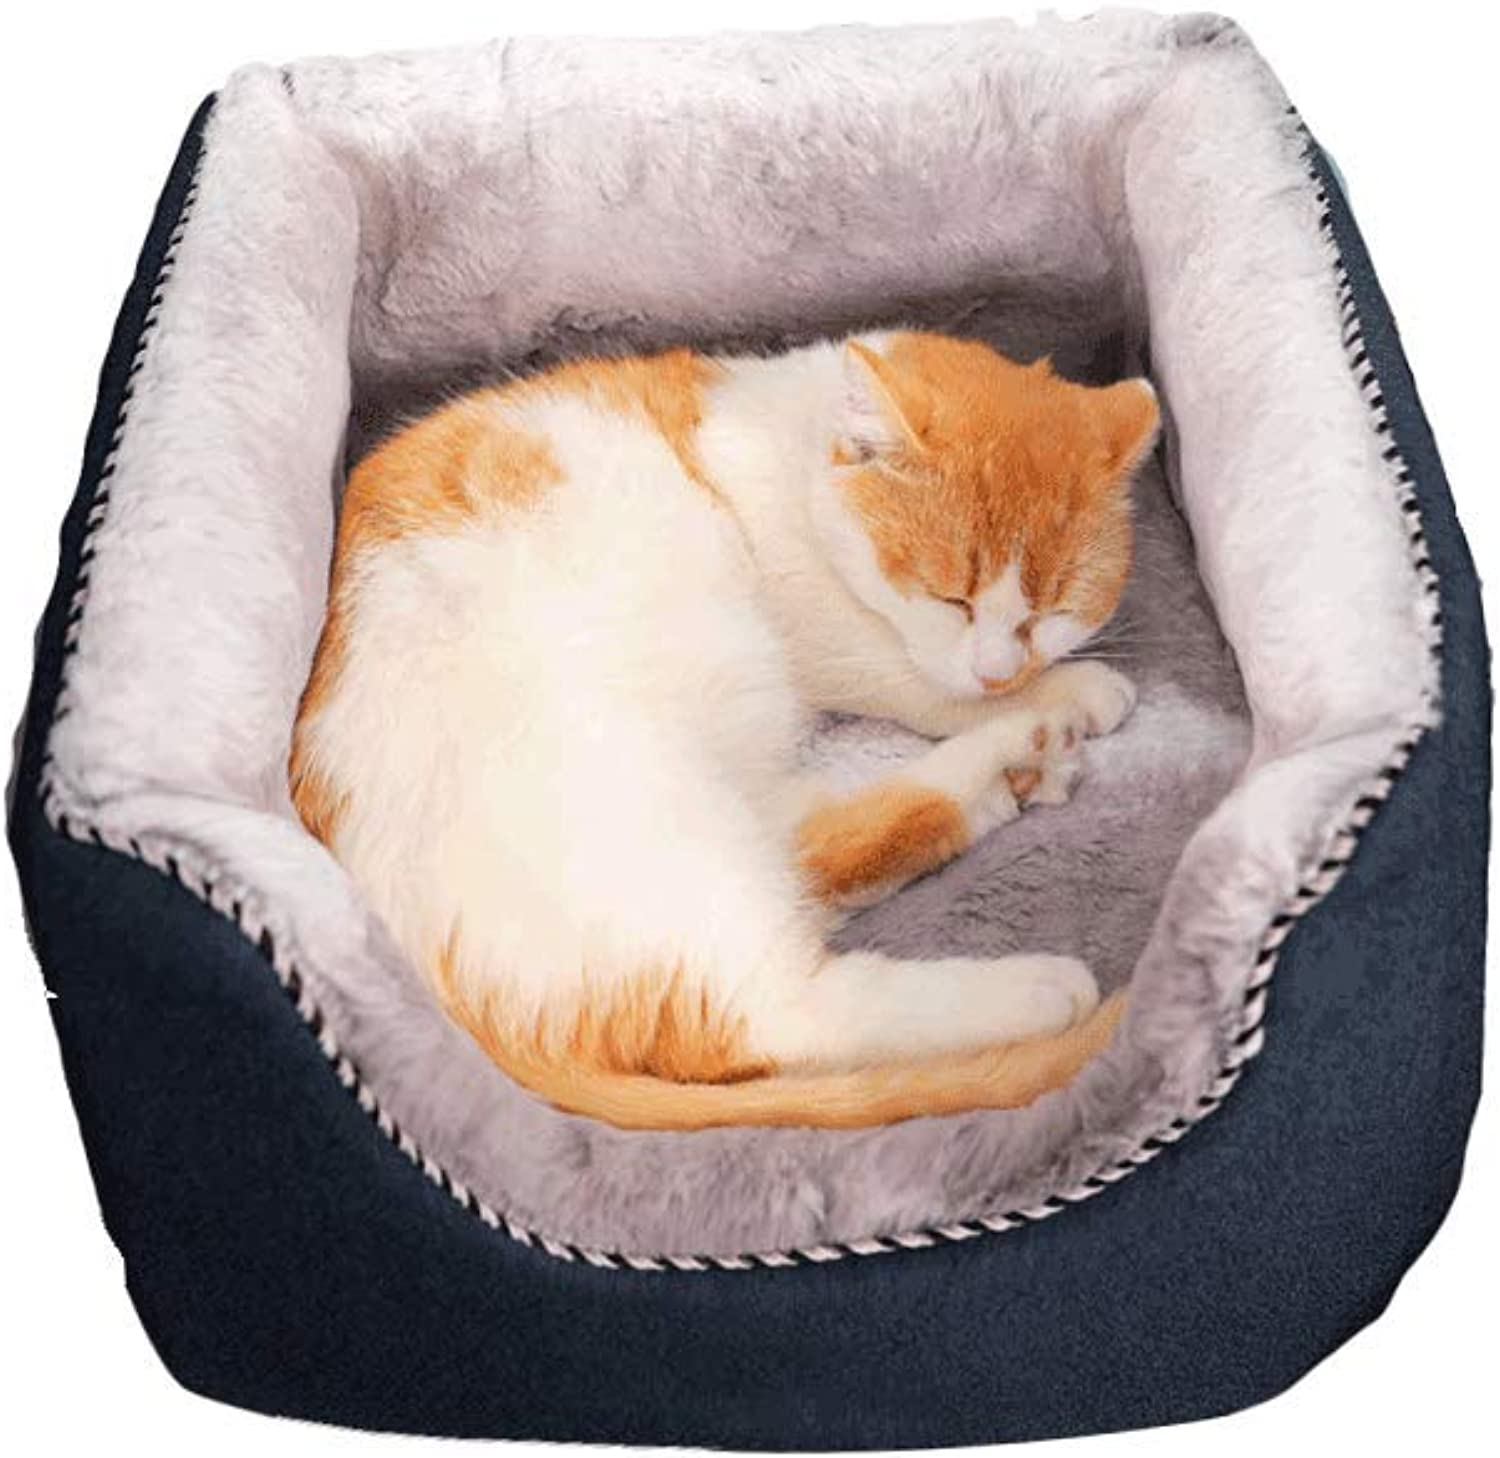 JXLBB Pet Cat Cat Litter Teddy Method Small Dog Kennel Dog Mattress Cat House Nest Pad Dualuse Warm In Winter And Cool In Summer, Suitable For All Seasons (Size   L)